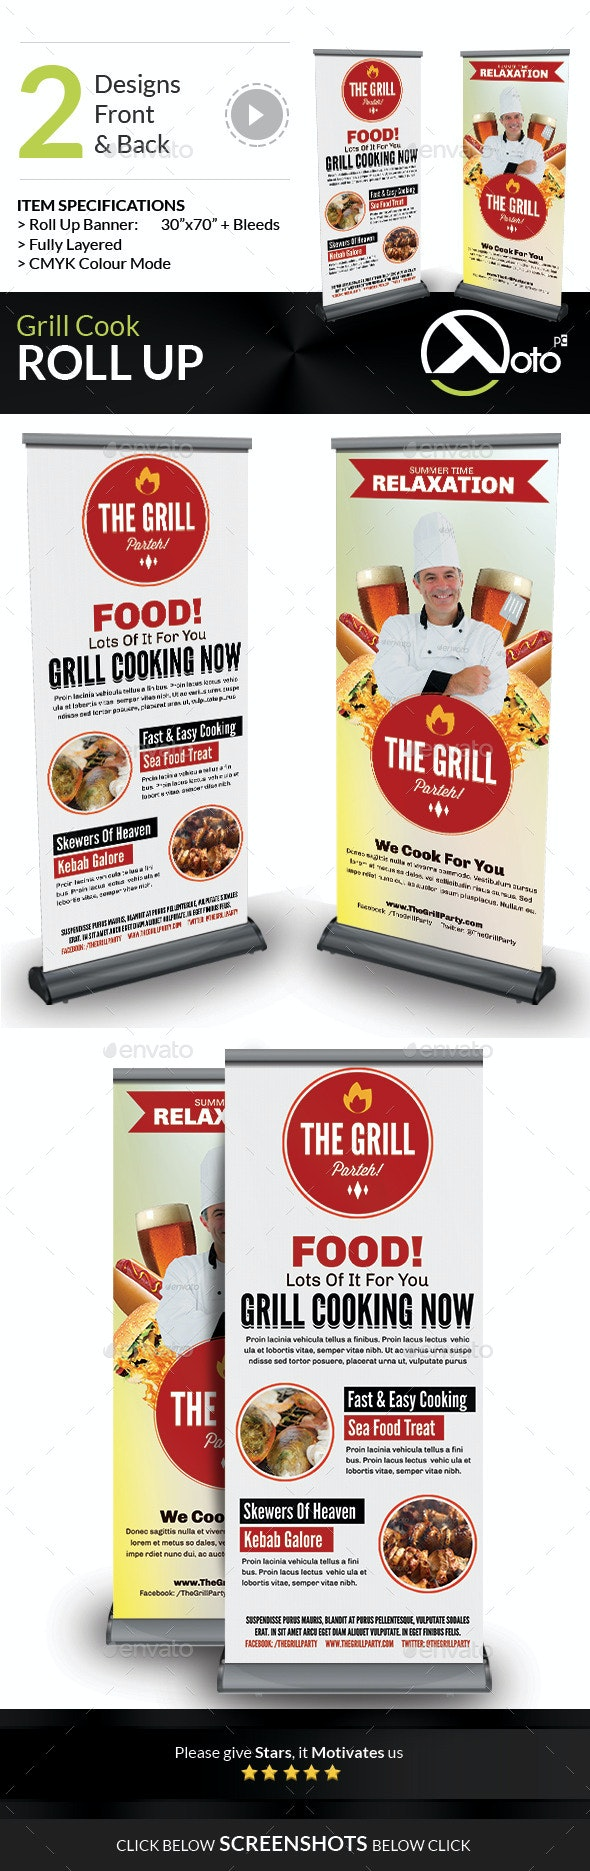 Grill Cook Outdoor Kebab Party Roll Up Banners - Signage Print Templates